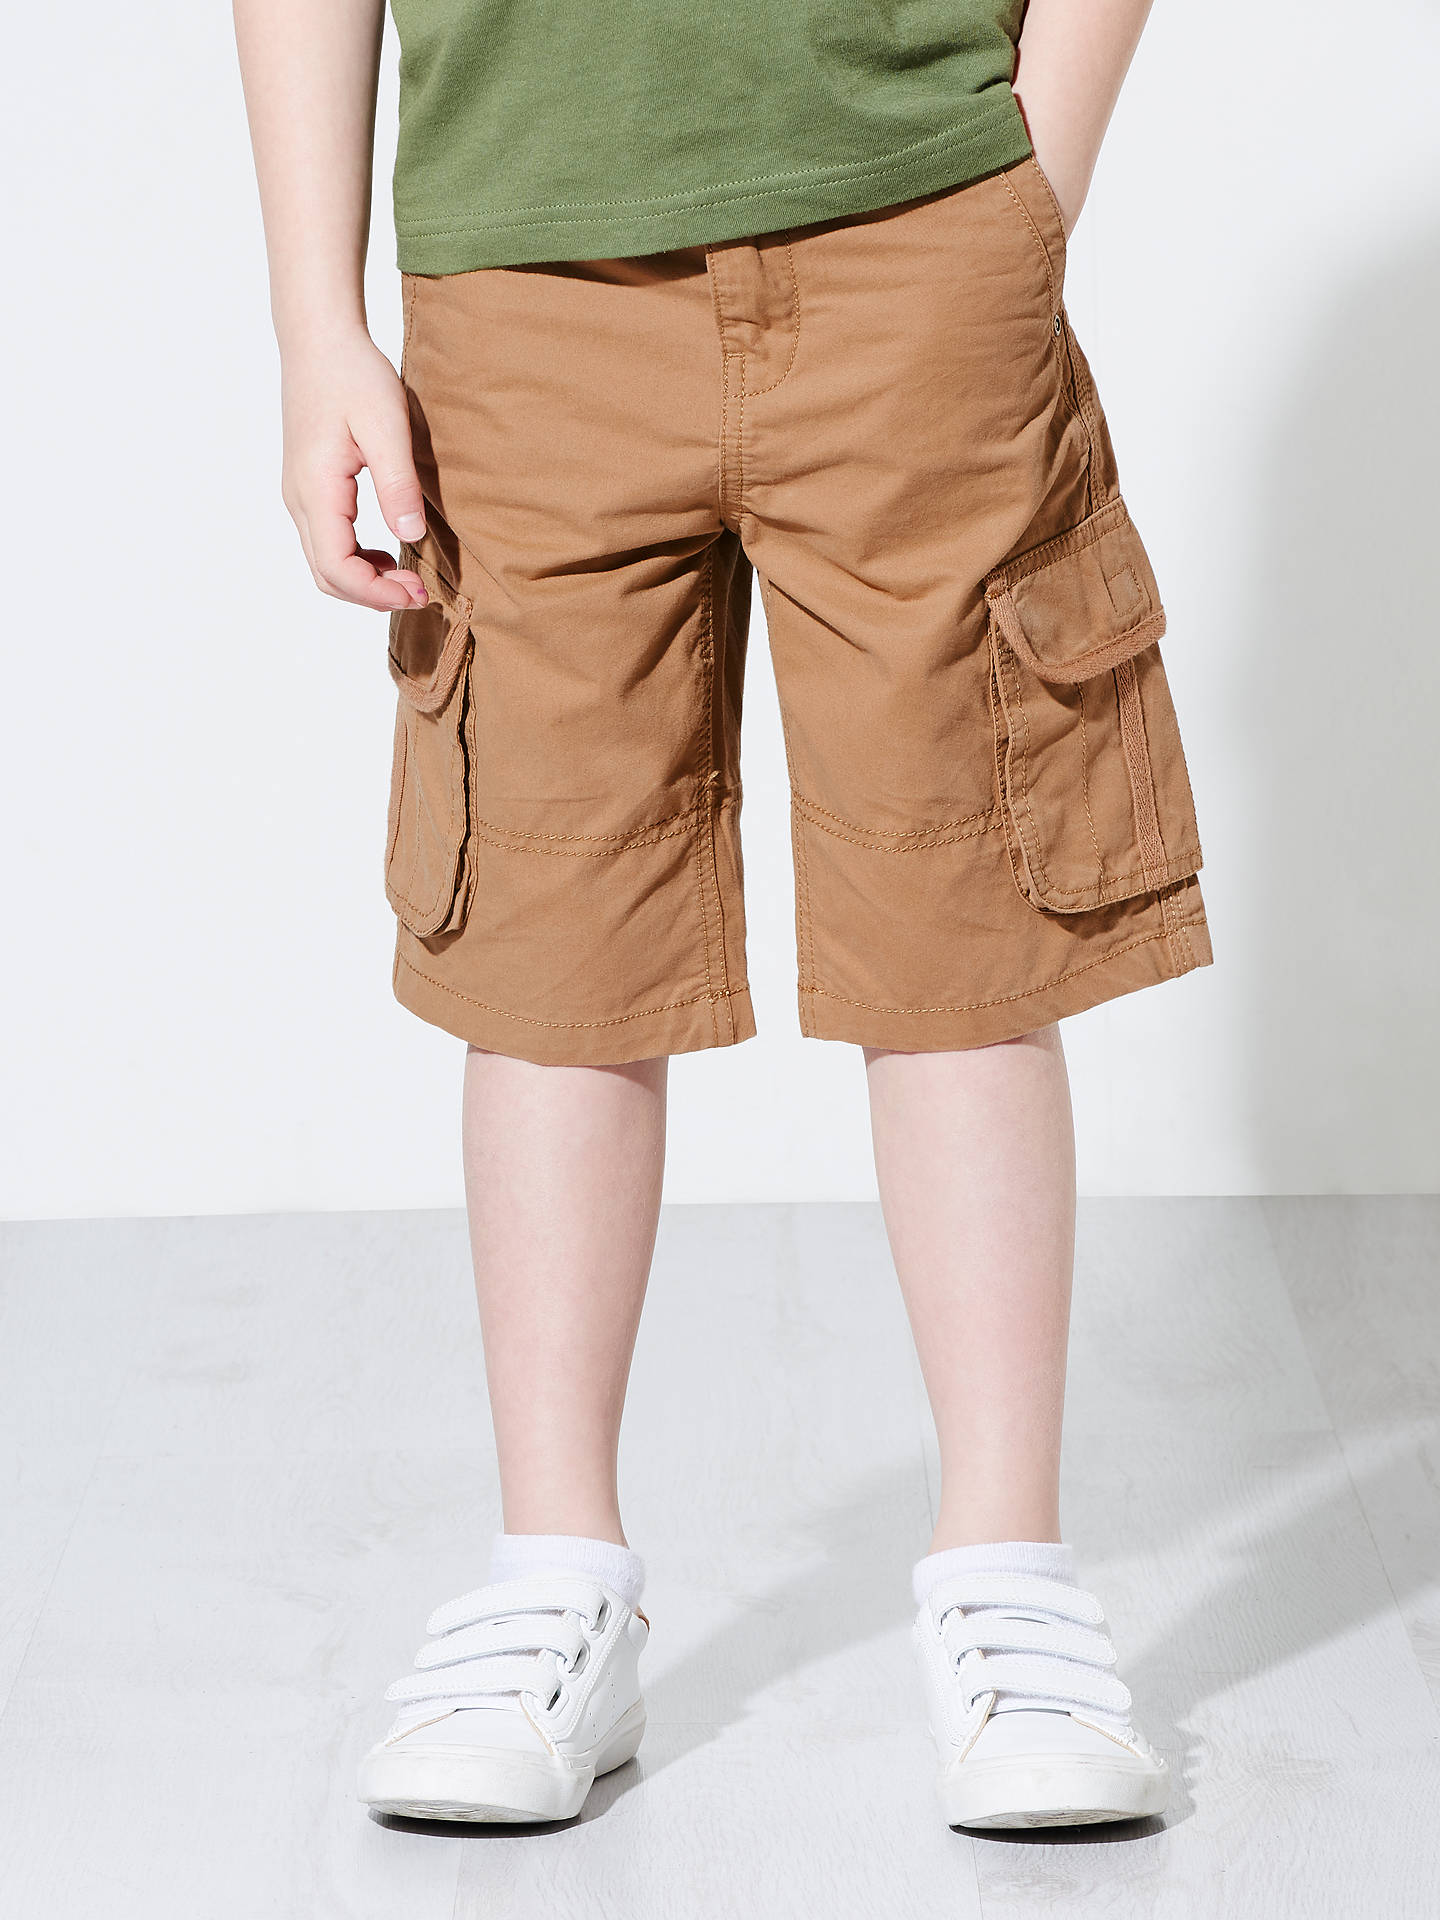 d152ac2f9 ... Buy John Lewis & Partners Boys' Cargo Shorts, Beige, 2 years Online at  ...